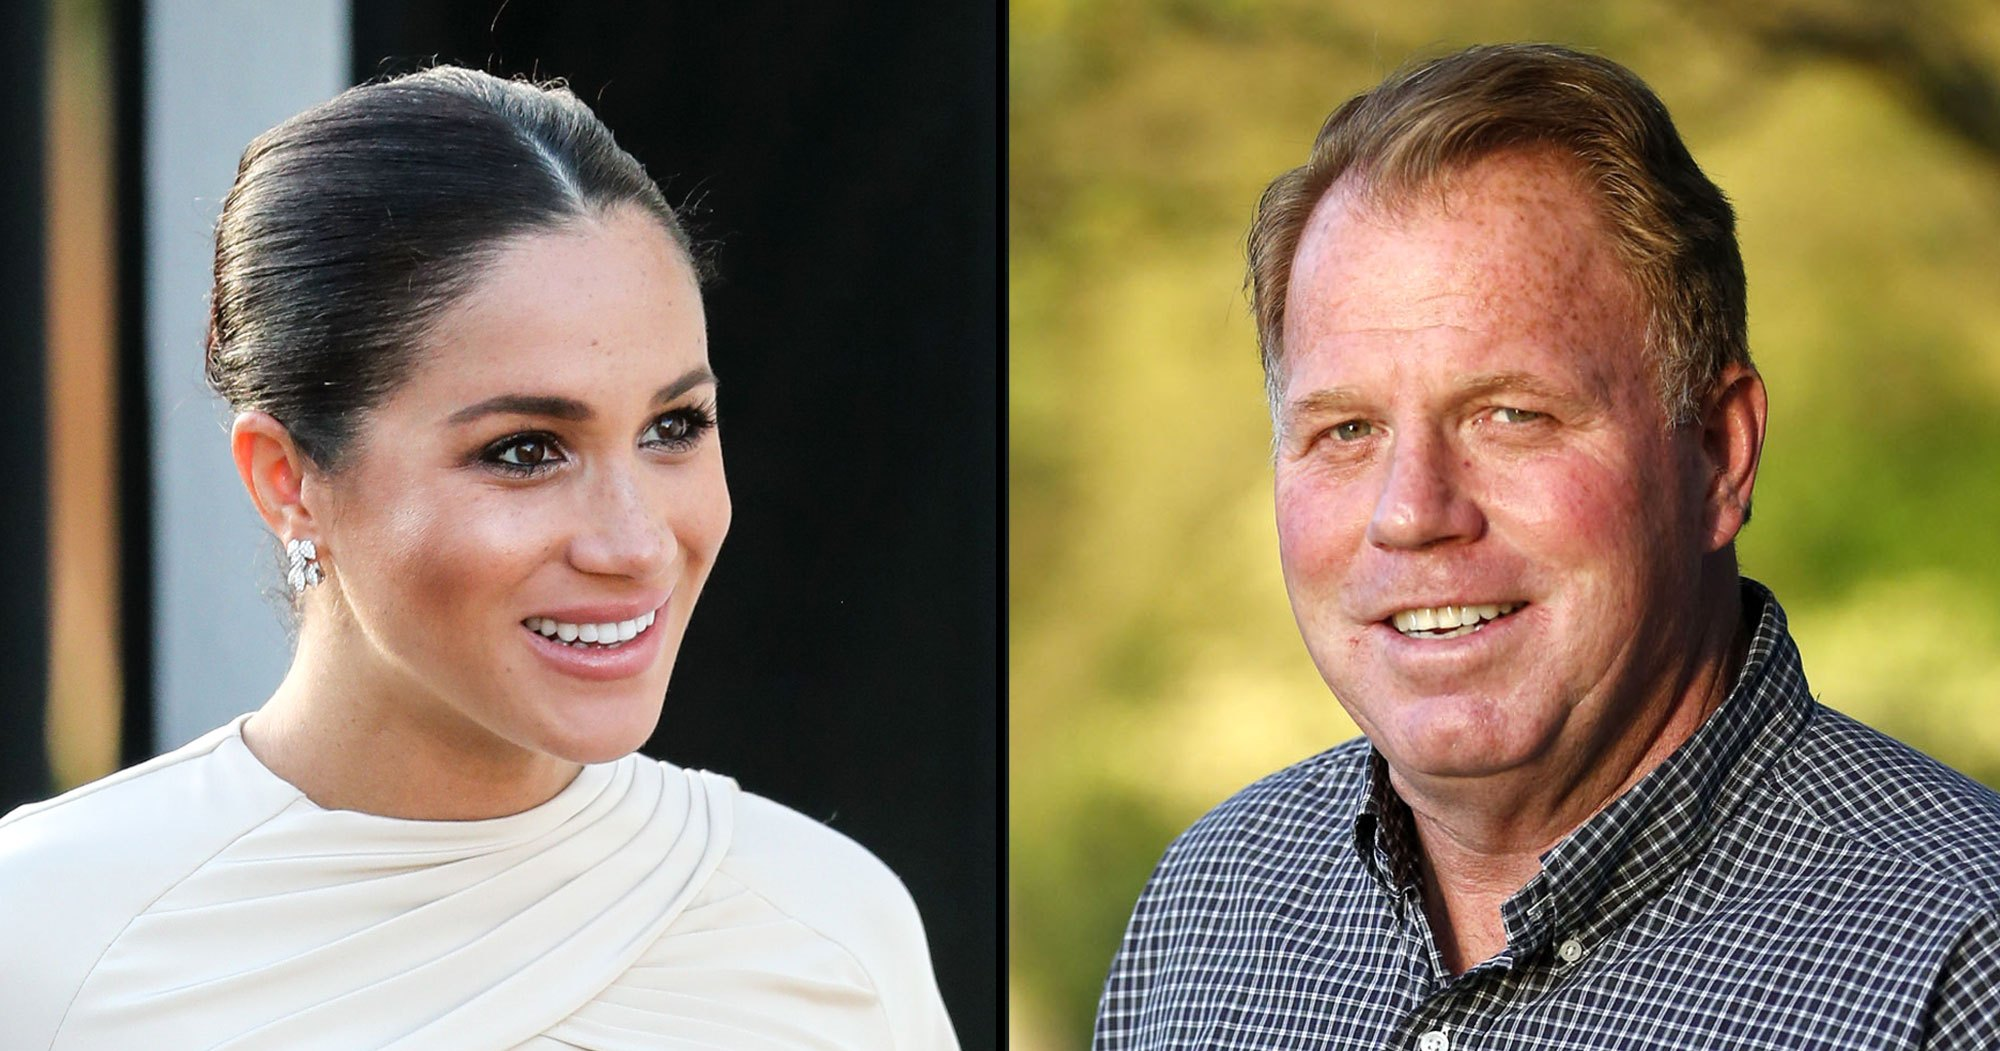 Thomas Markle Jr. Reacts to Duchess Meghan's Royal Baby's Birth